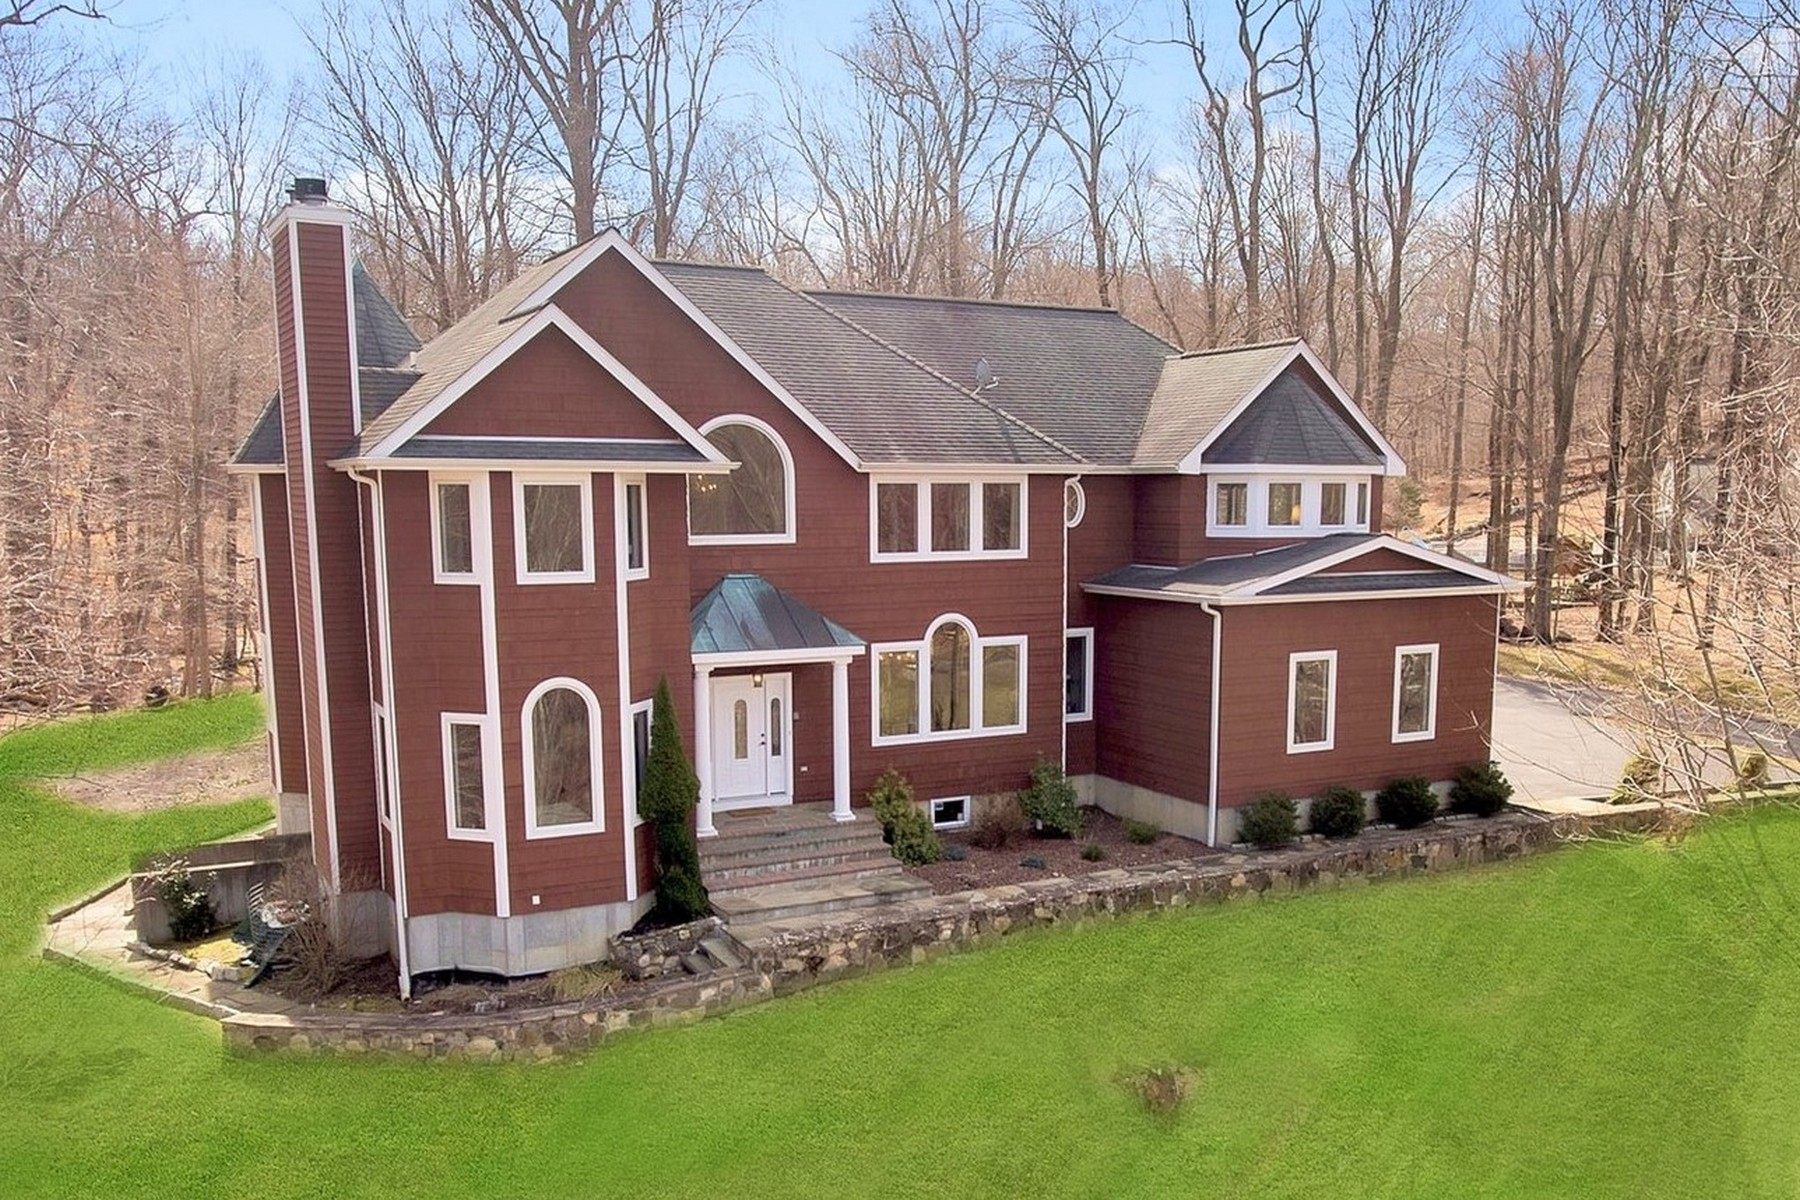 Single Family Homes for Sale at Stately Colabaugh Pond Retreat 181 Colabaugh Pond Road Croton On Hudson, New York 10520 United States